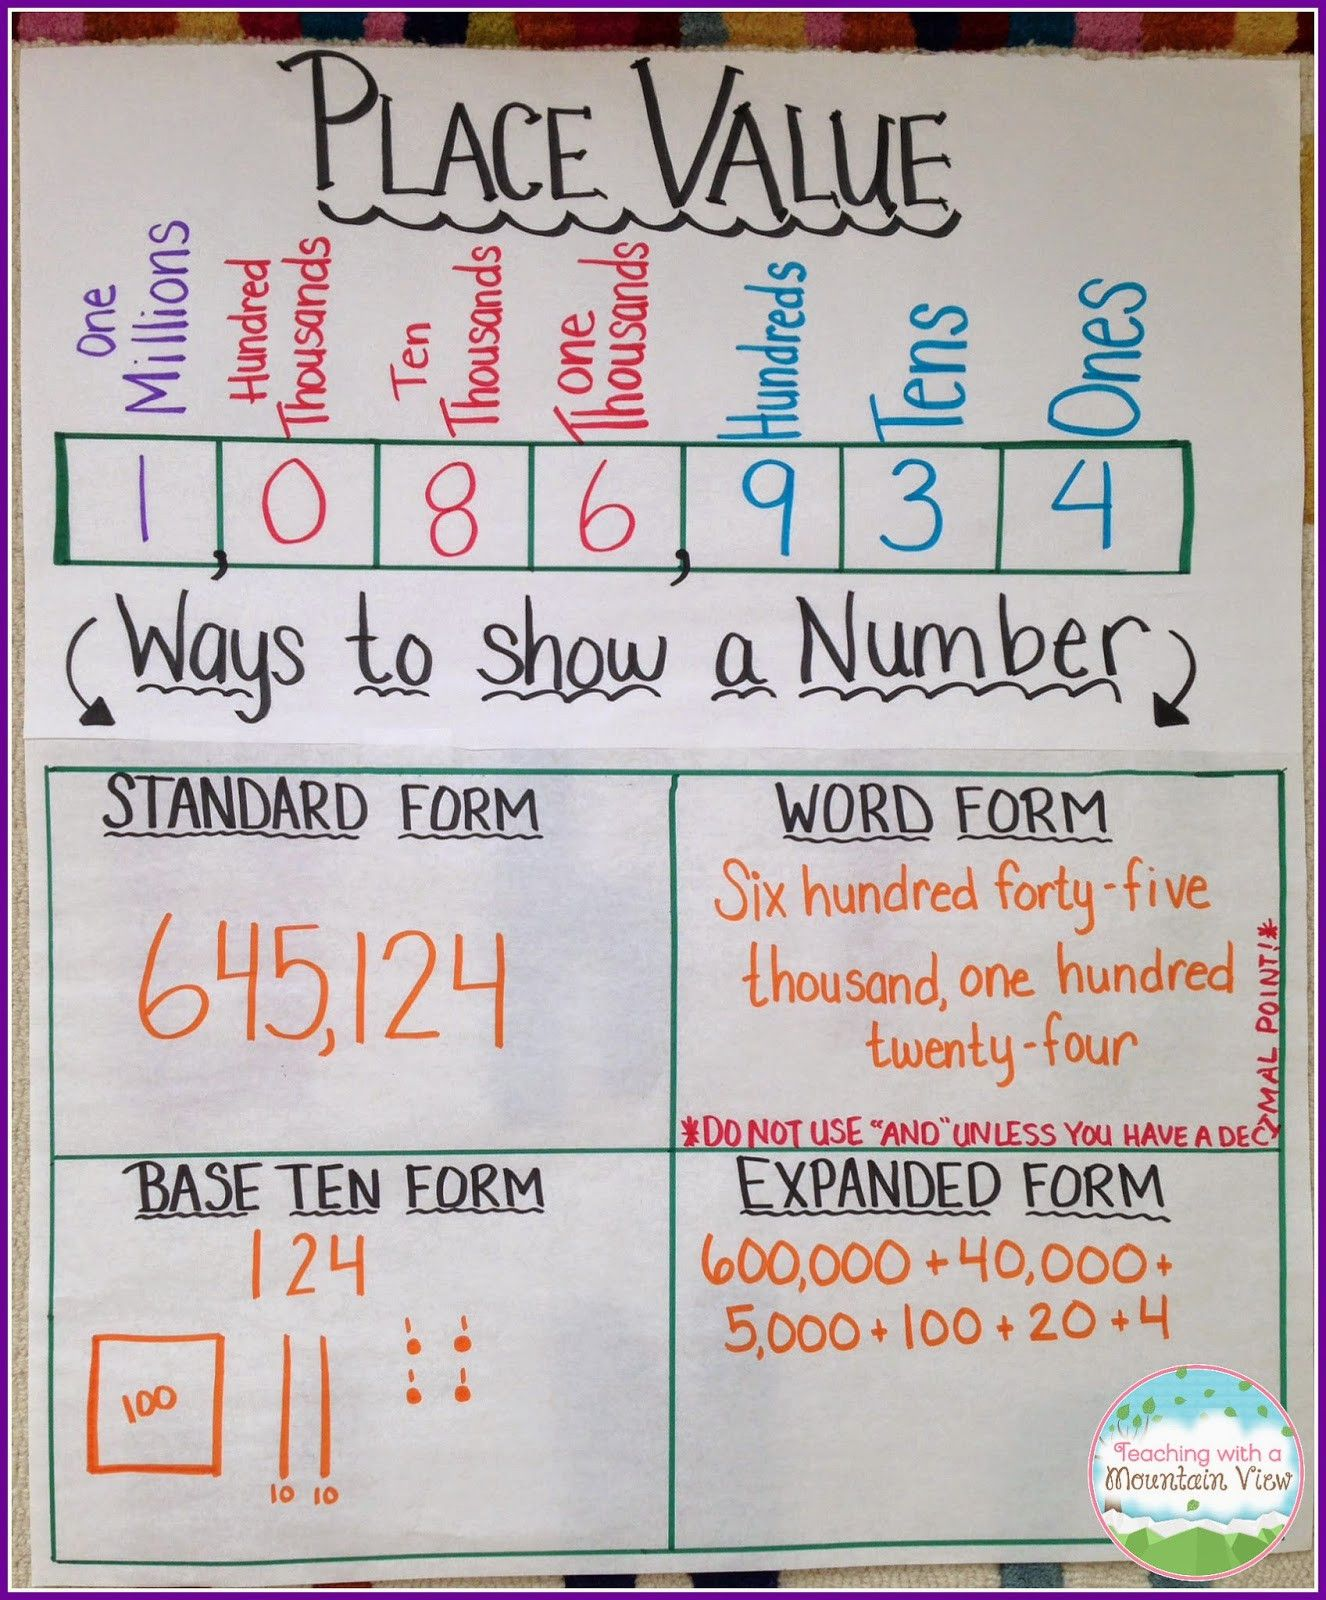 5 Free Math Worksheets Third Grade 3 Place Value And Rounding Round 4 Digit Numbers Nearest 1 3rd Grade Math 4th Grade Math Education Math [ 1600 x 1326 Pixel ]